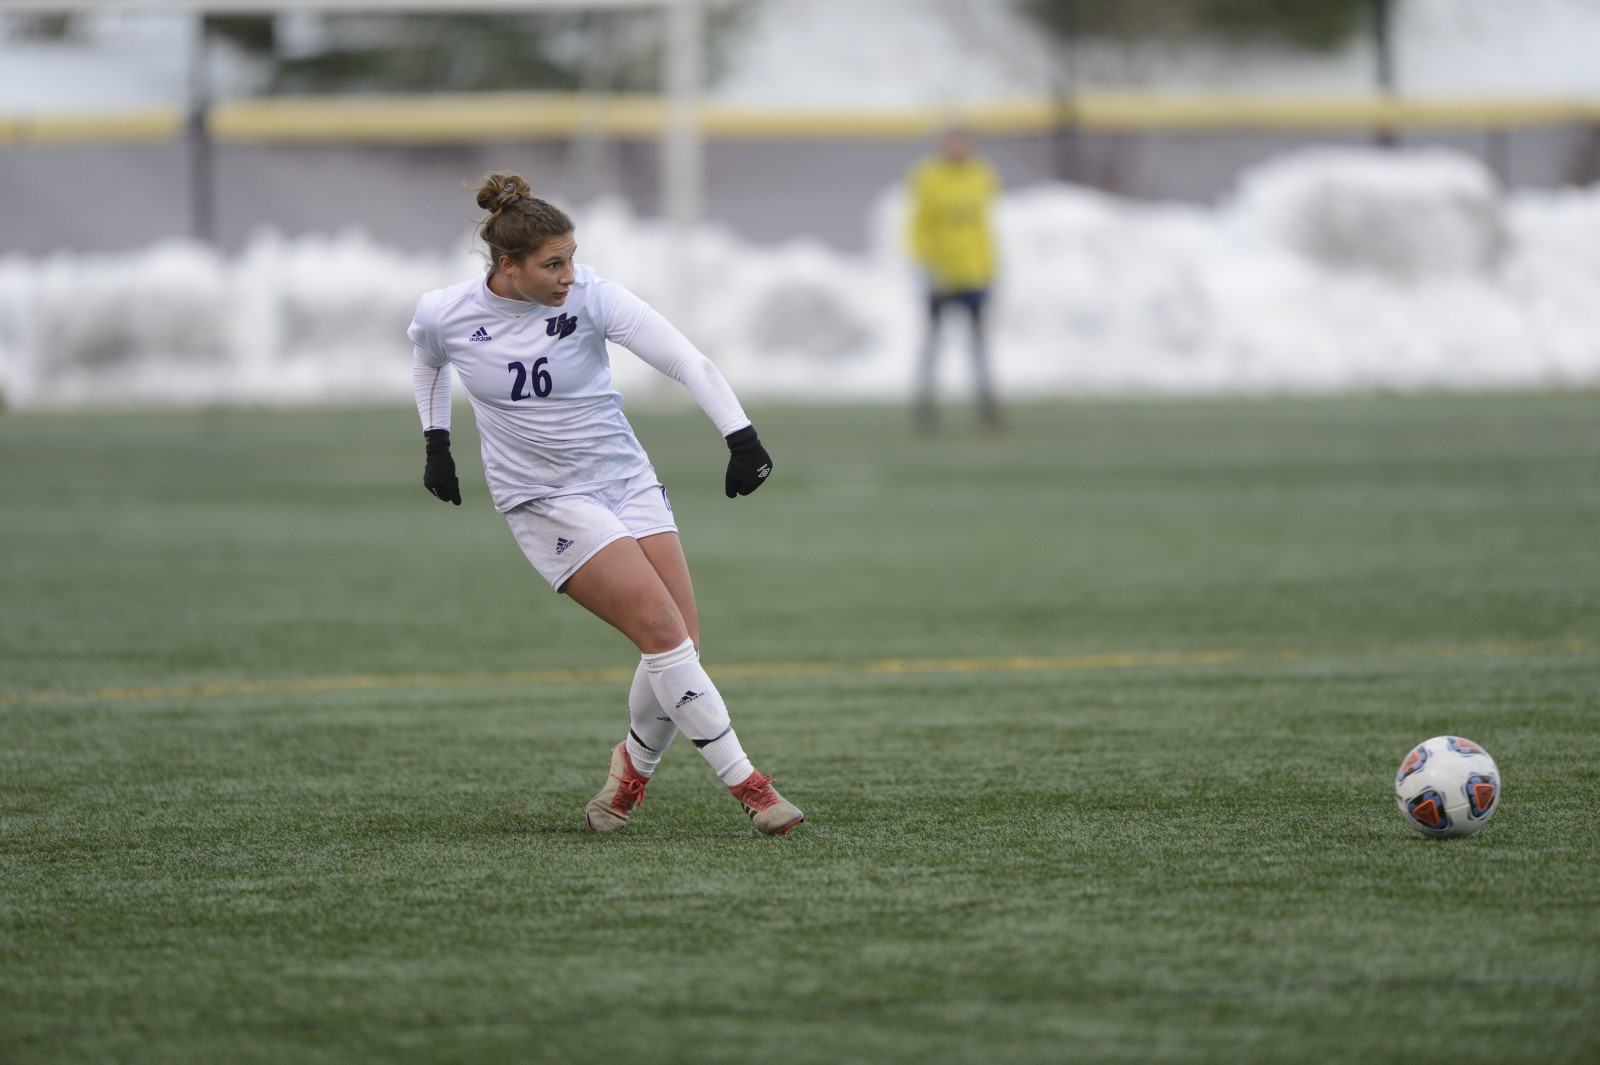 Bridgeport Clinches 2019 ECC Women's Soccer Regular Season Title With 1-0 Road Win Over Molloy